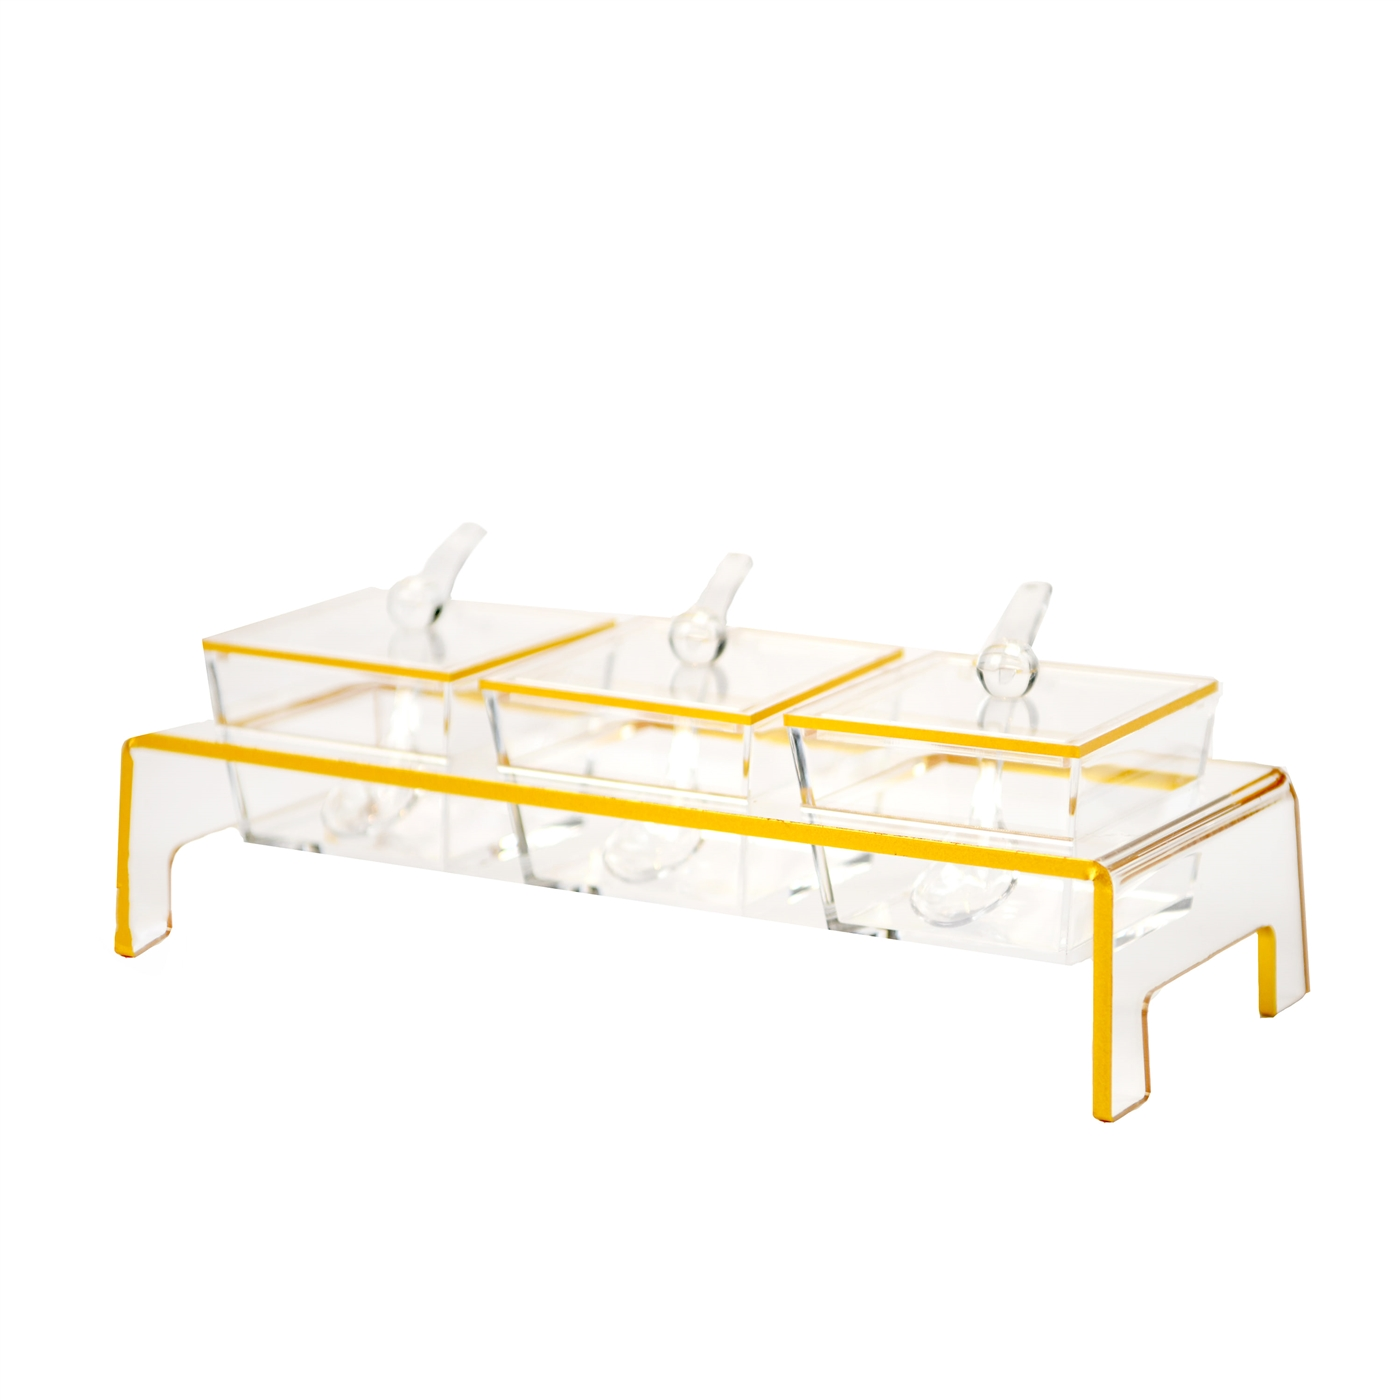 Lucite 10 pc Gold Trim Serving Tray with Spoons and Holder and Lid